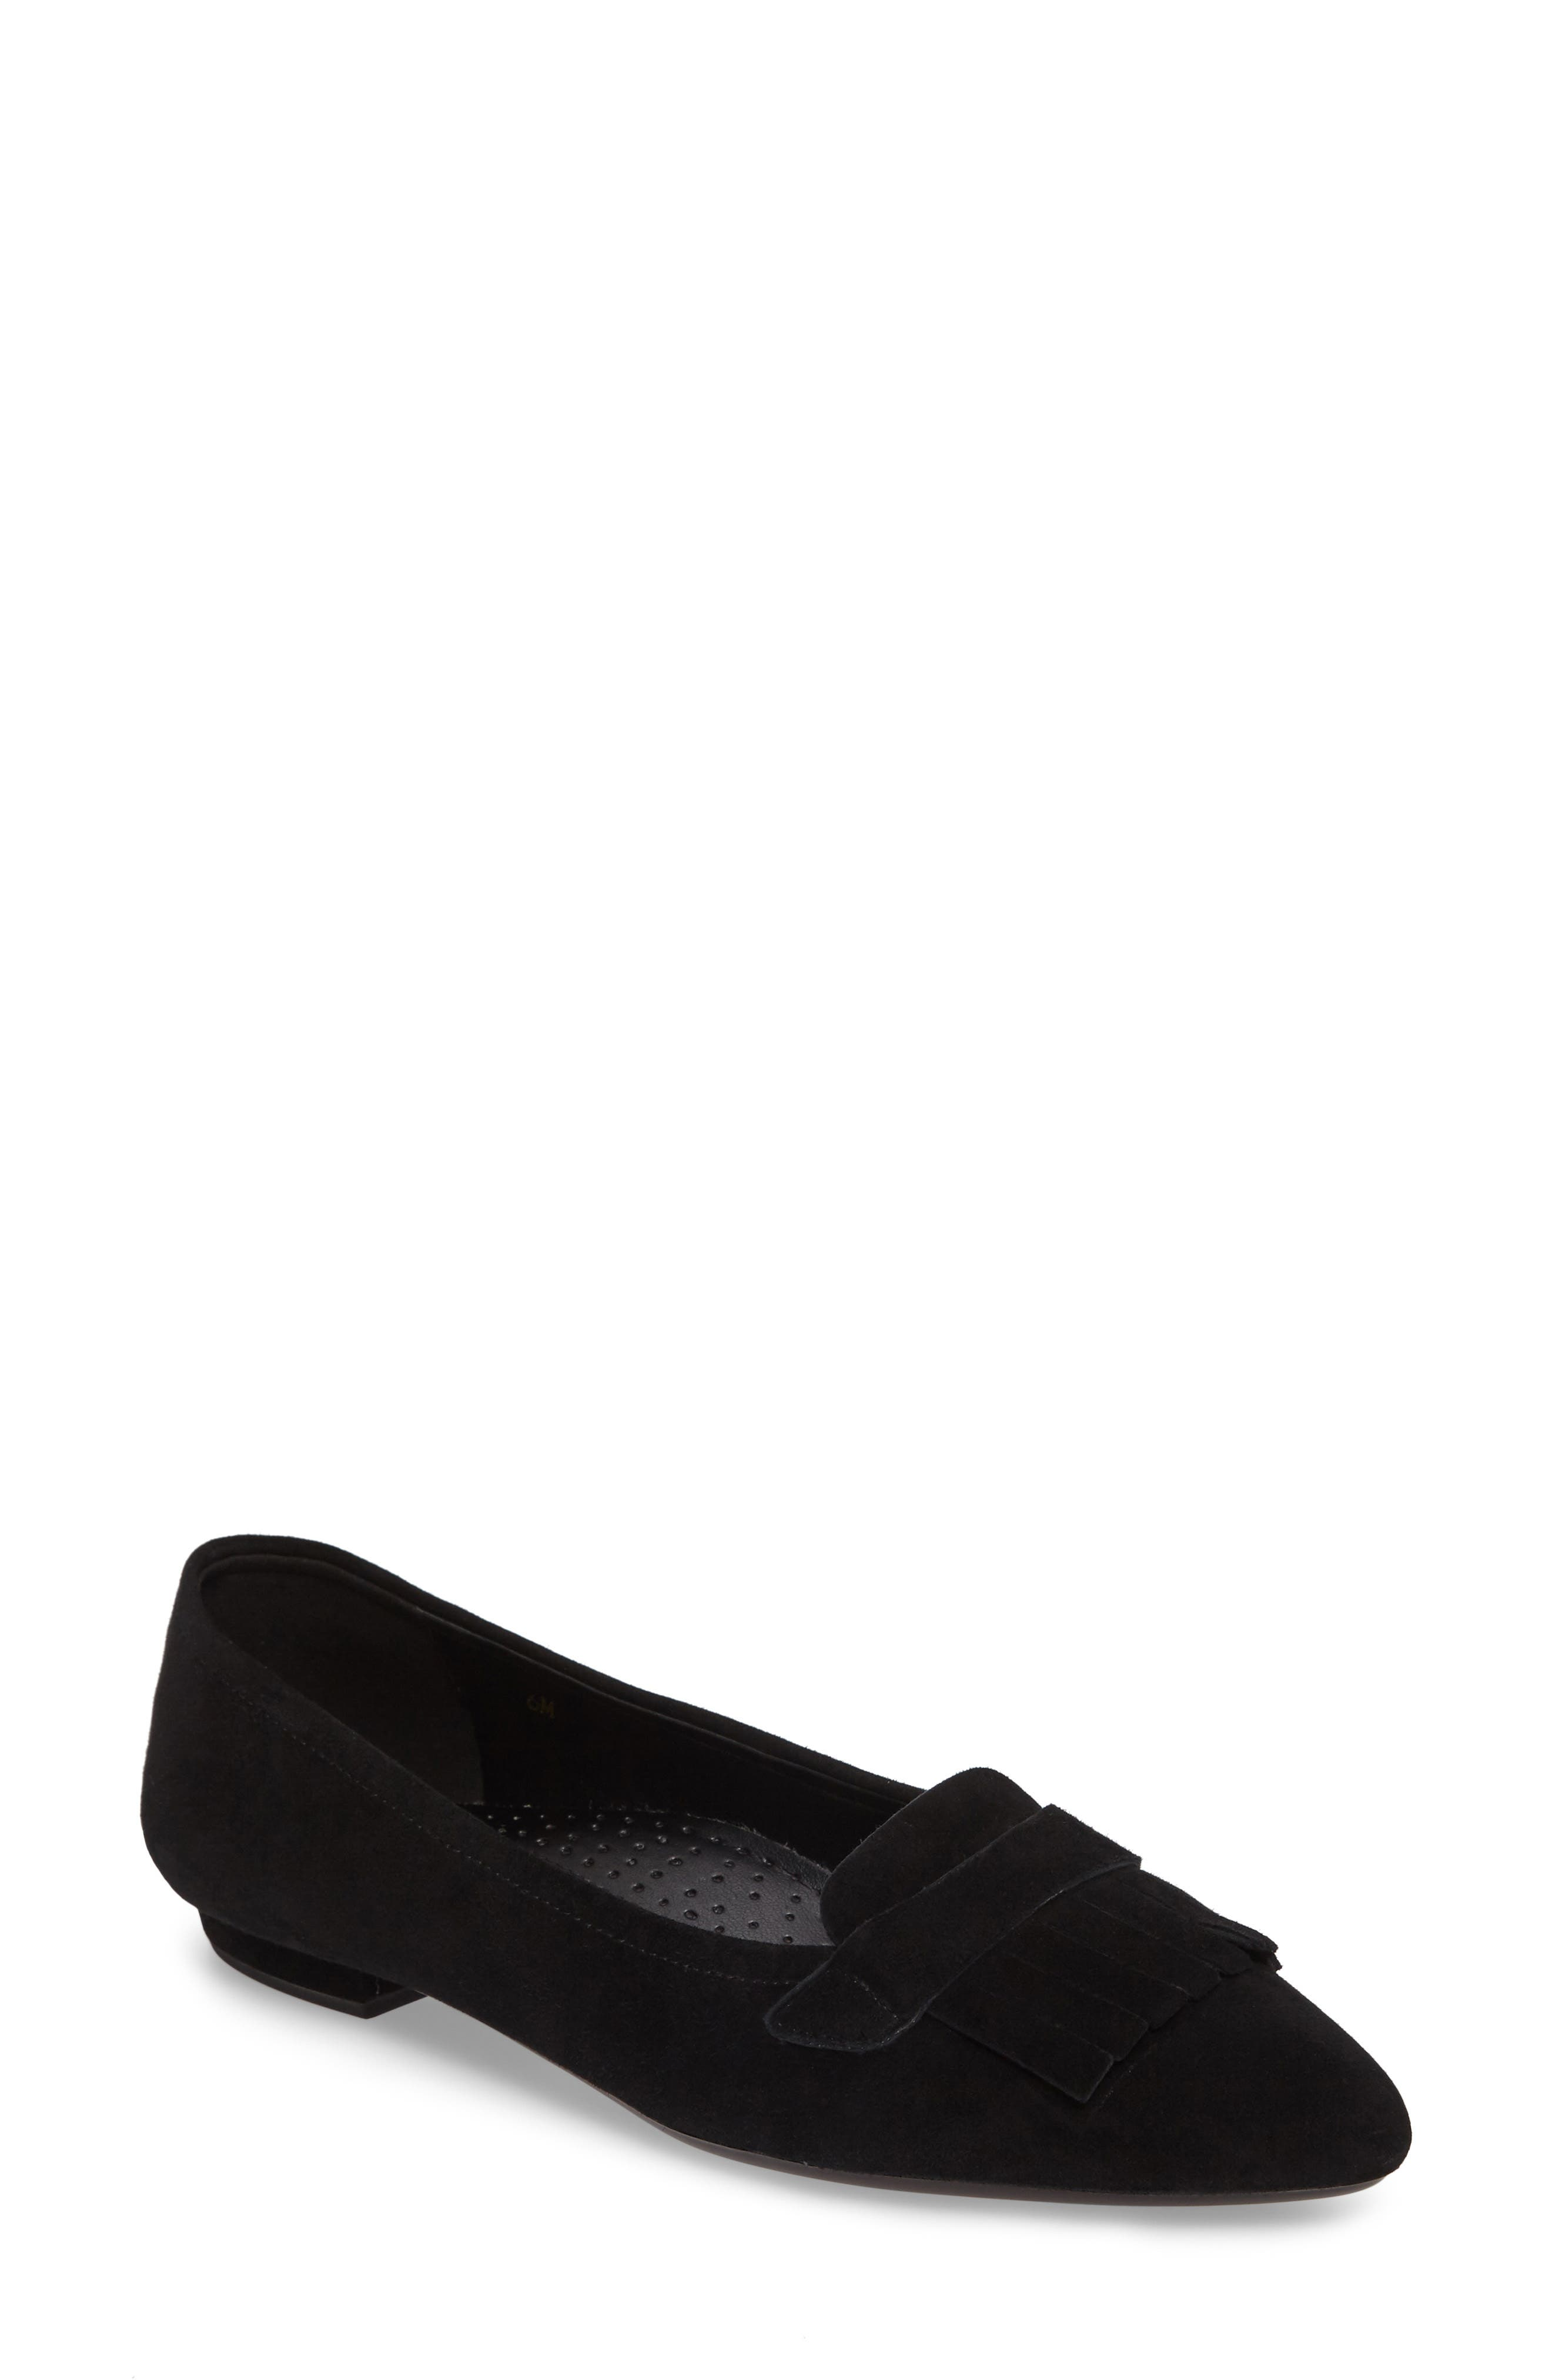 VANELi Gaea Loafer Flat (Women)